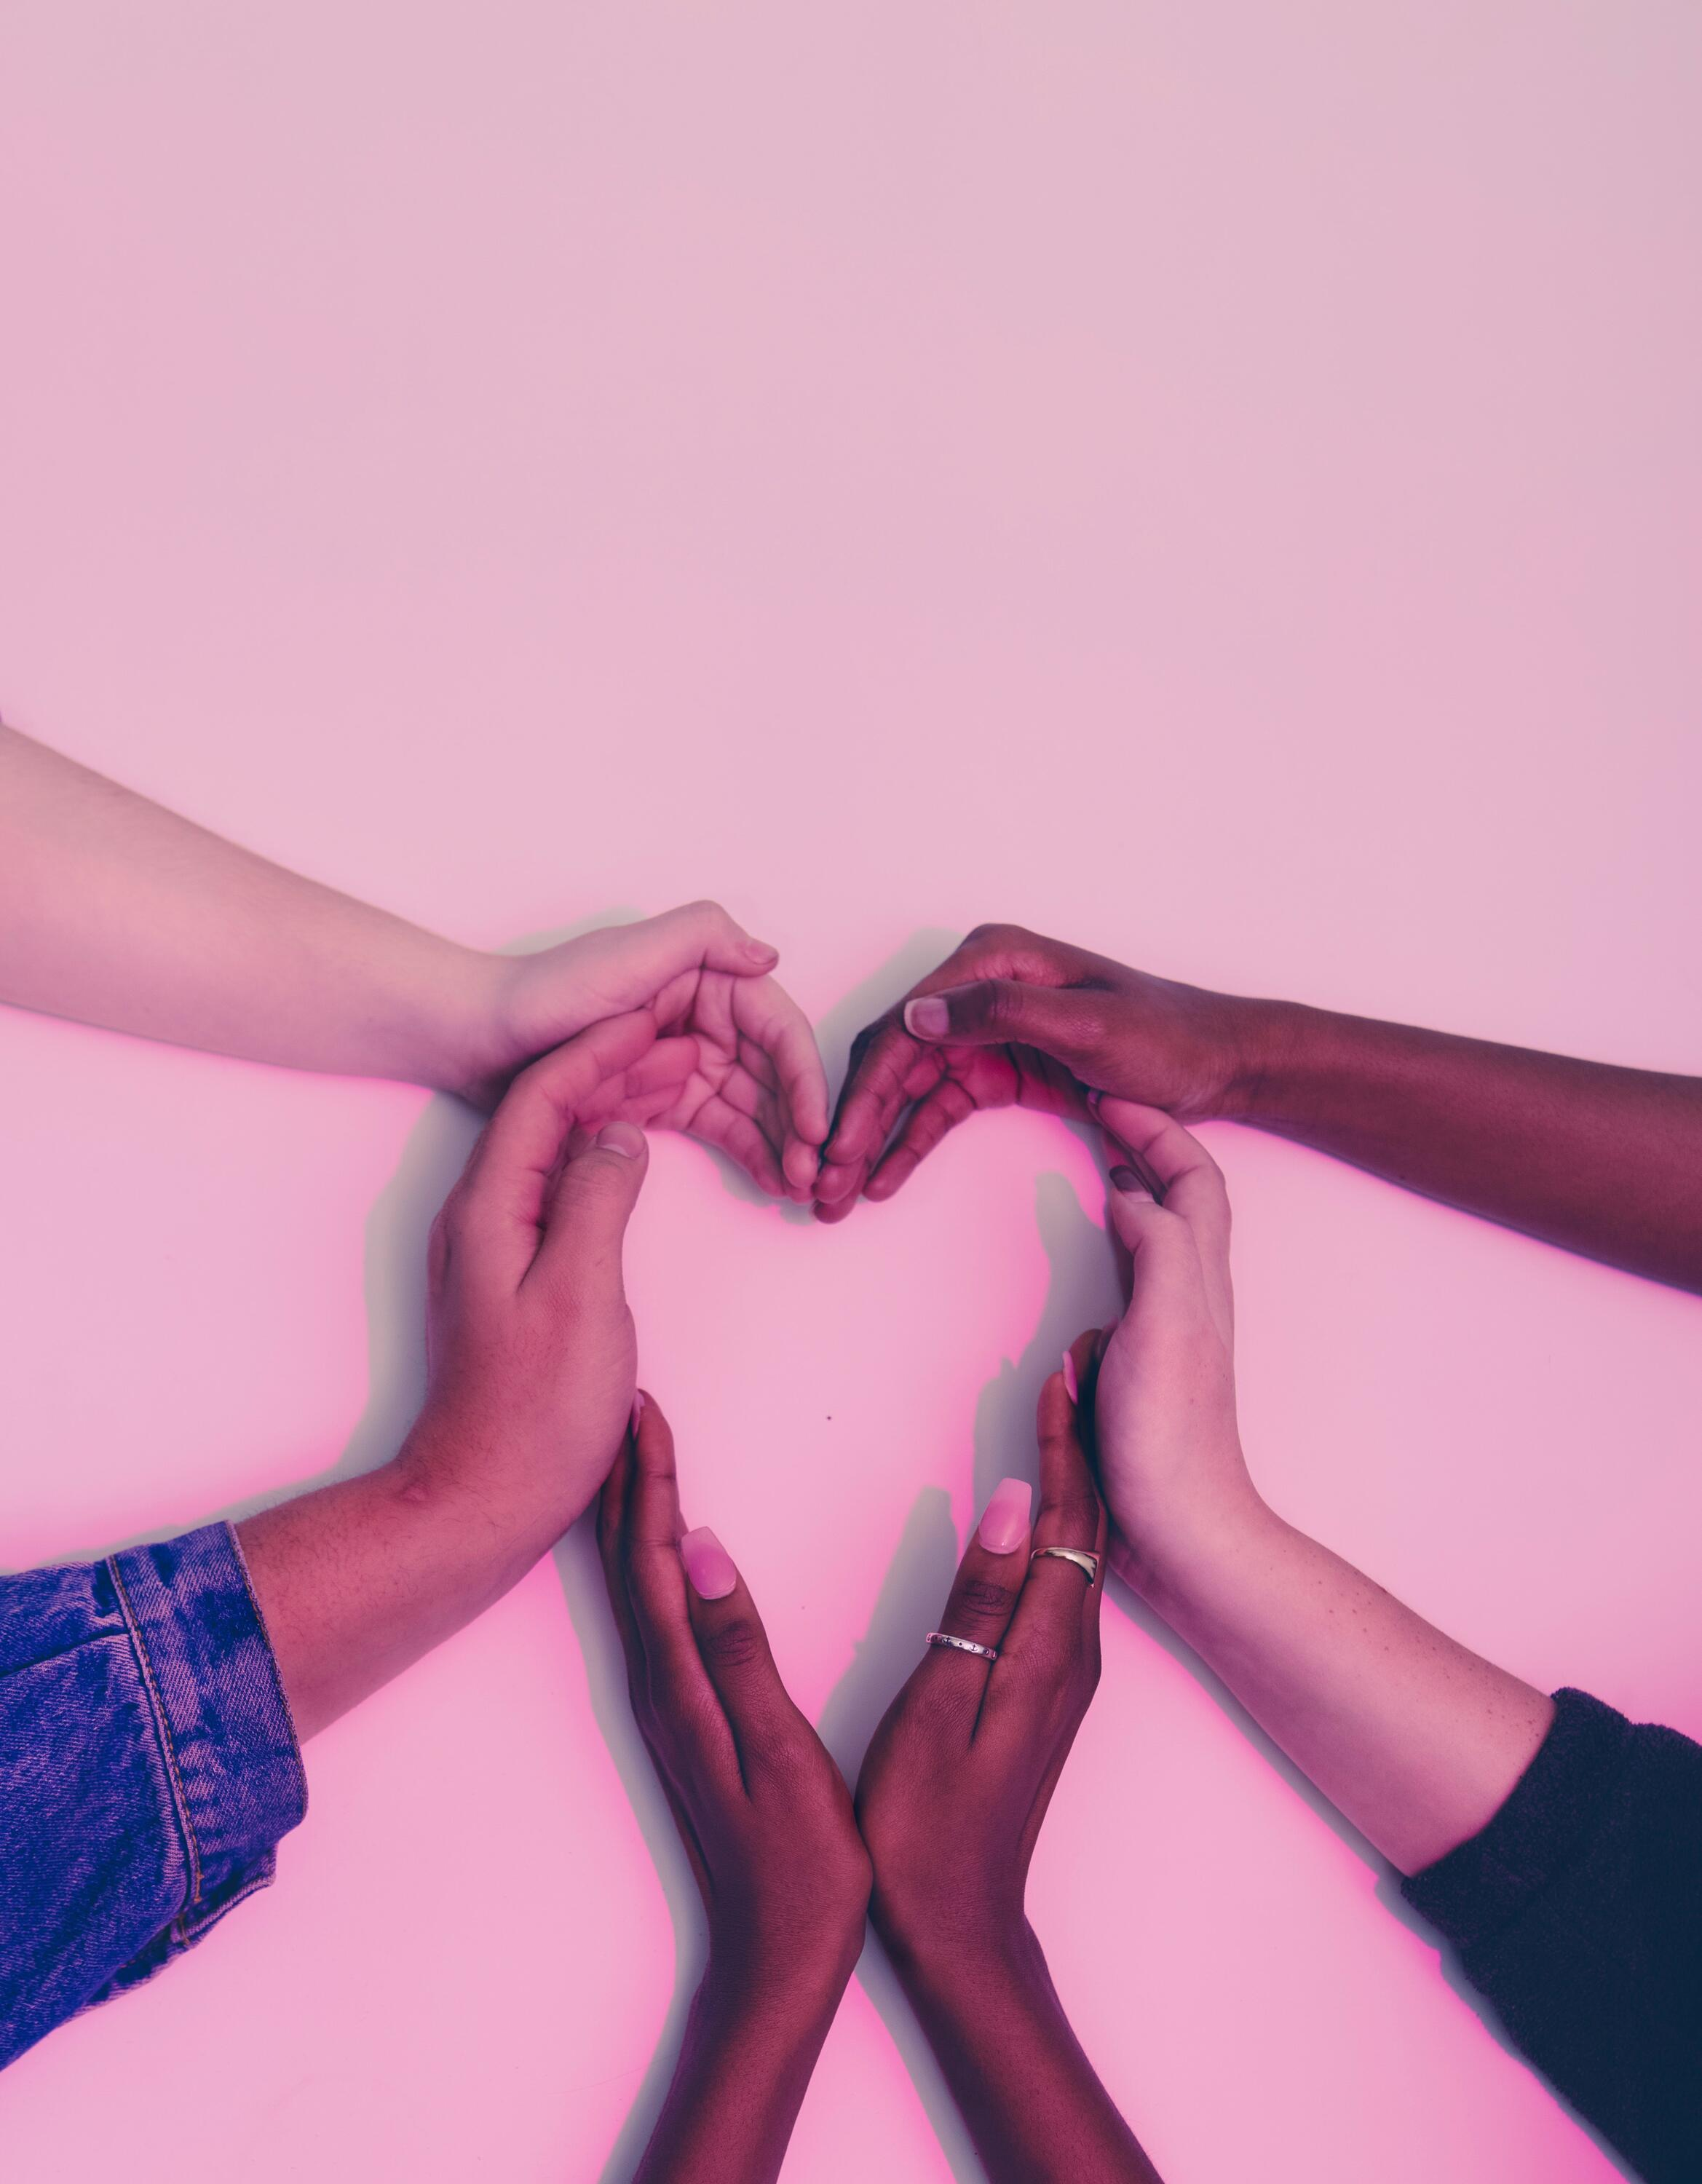 Many hands making a heart